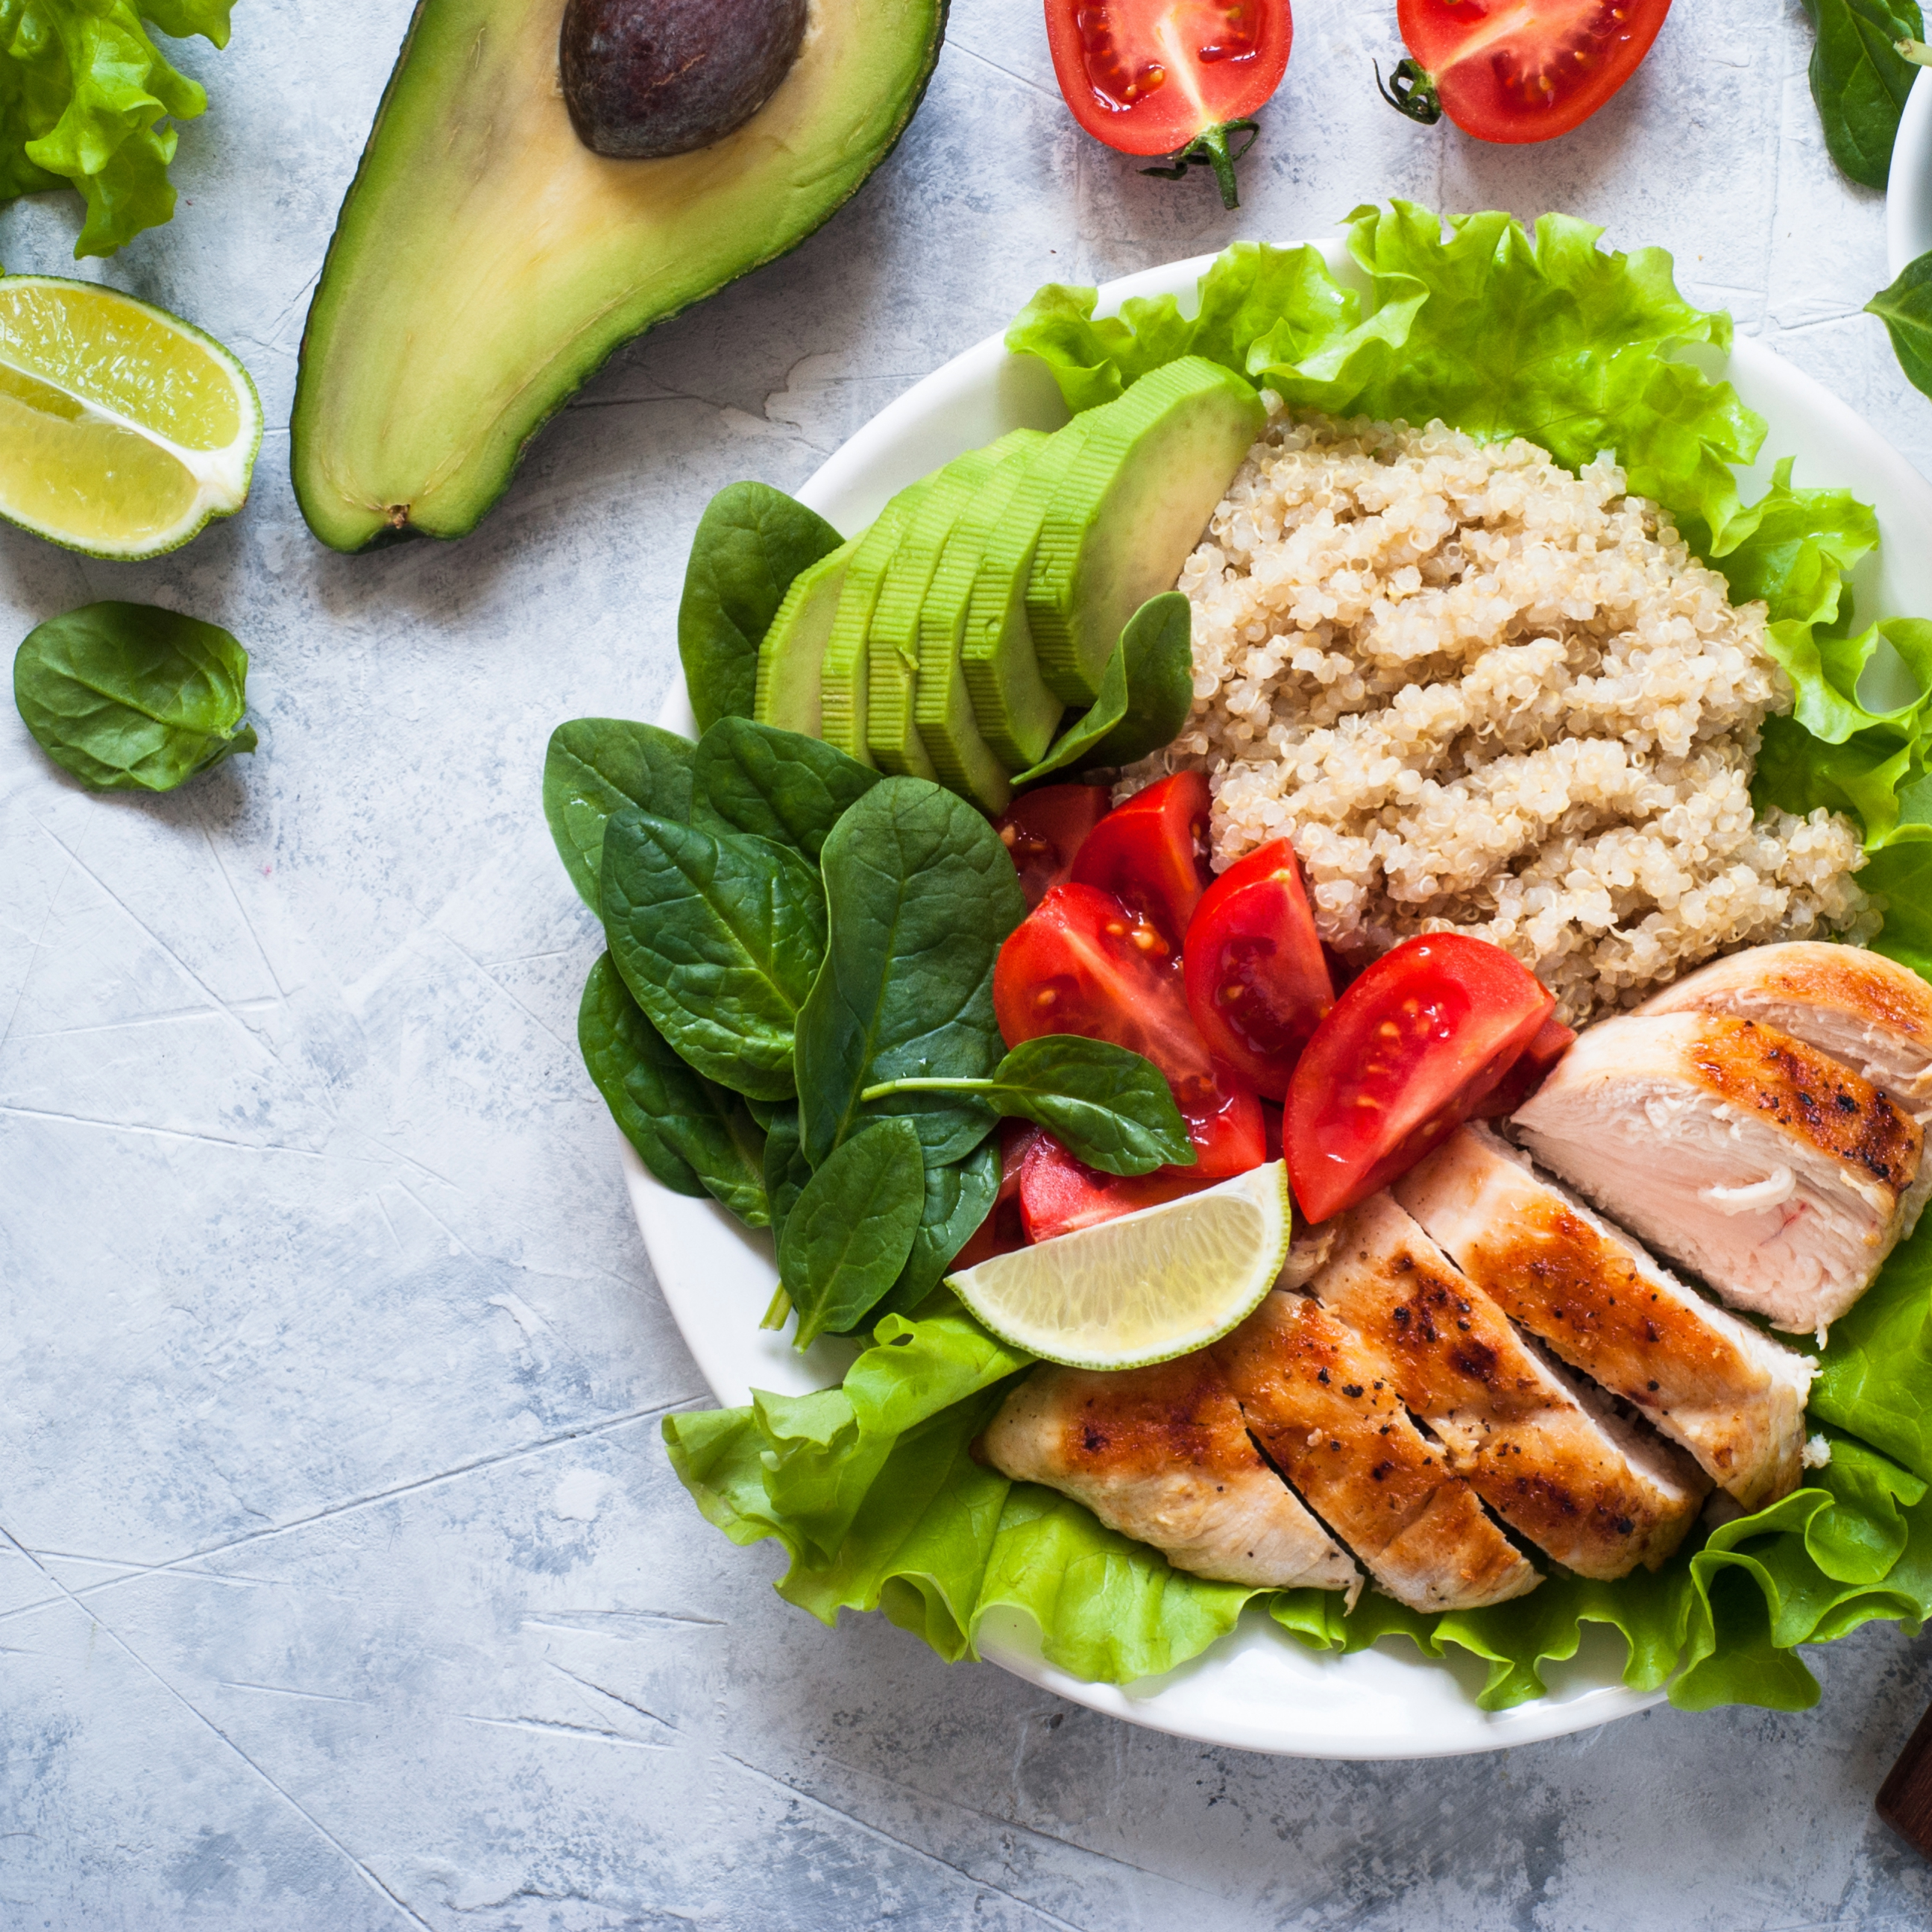 Balanced meal: fresh salad with quinoa, chicken breast, avocado, spinach, lettuce and tomatoes